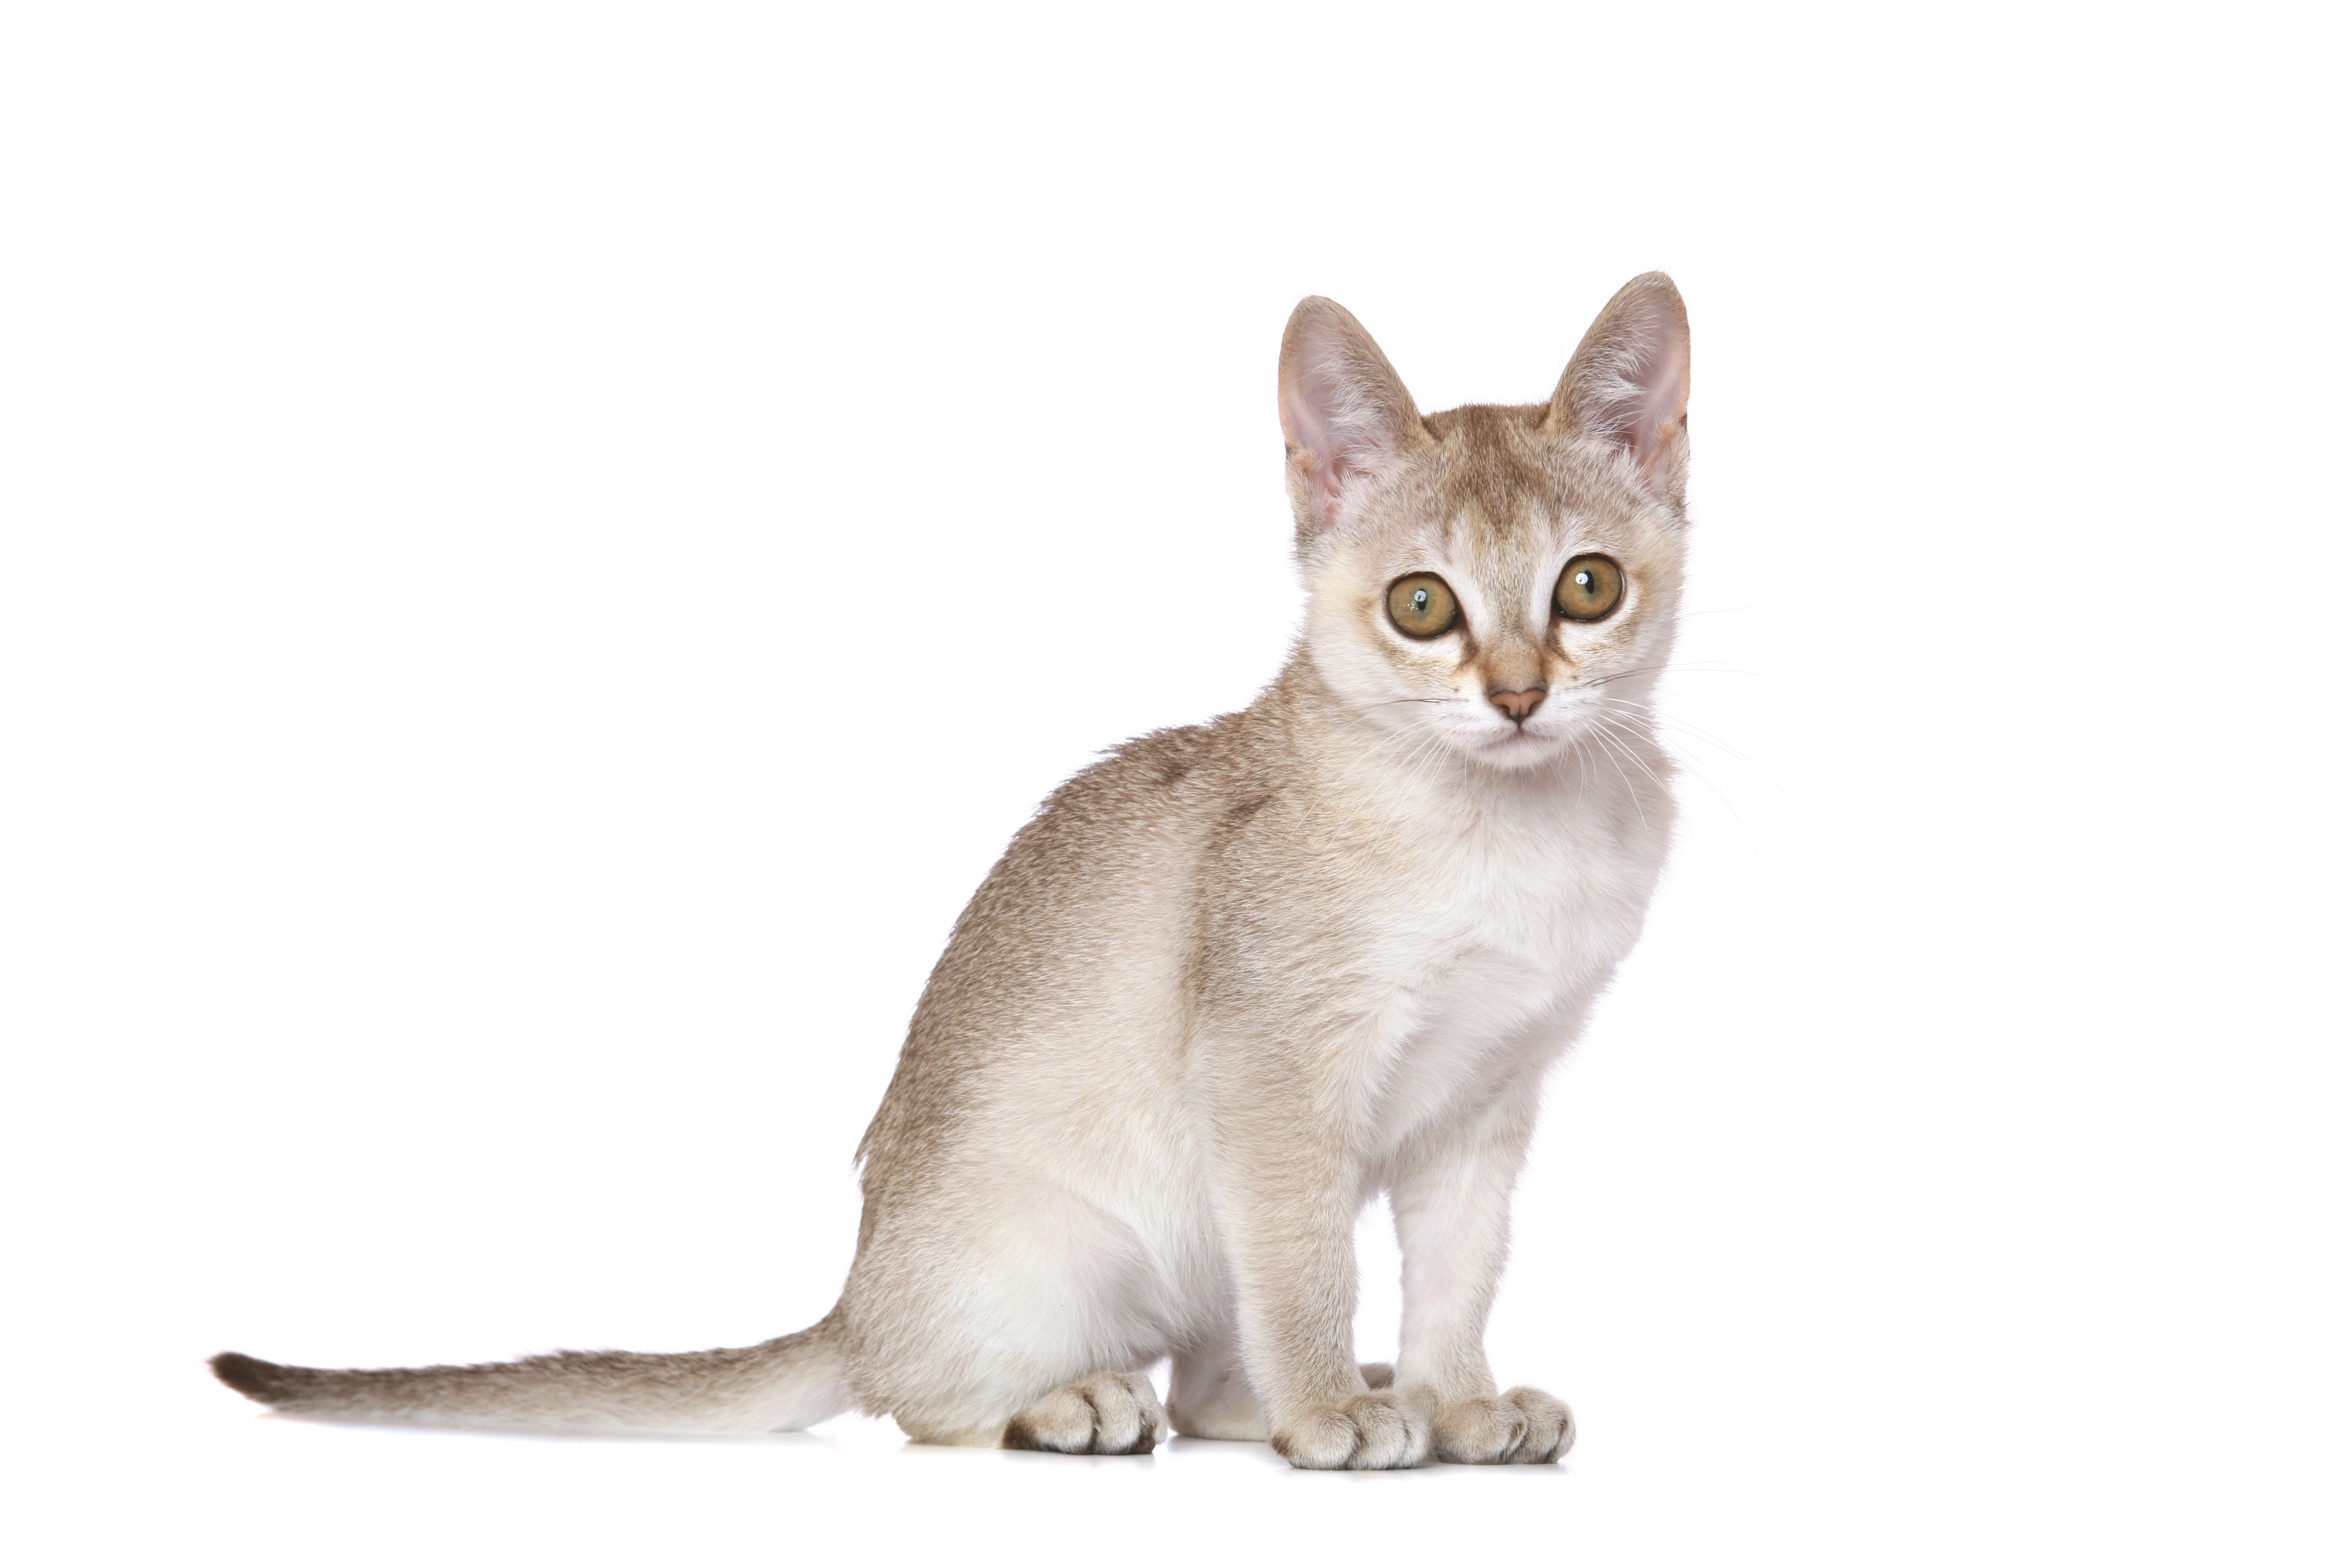 The Top 10 Smartest Cat Breeds In The World With Images Small Cat Breeds Cat Breeds Singapura Cat